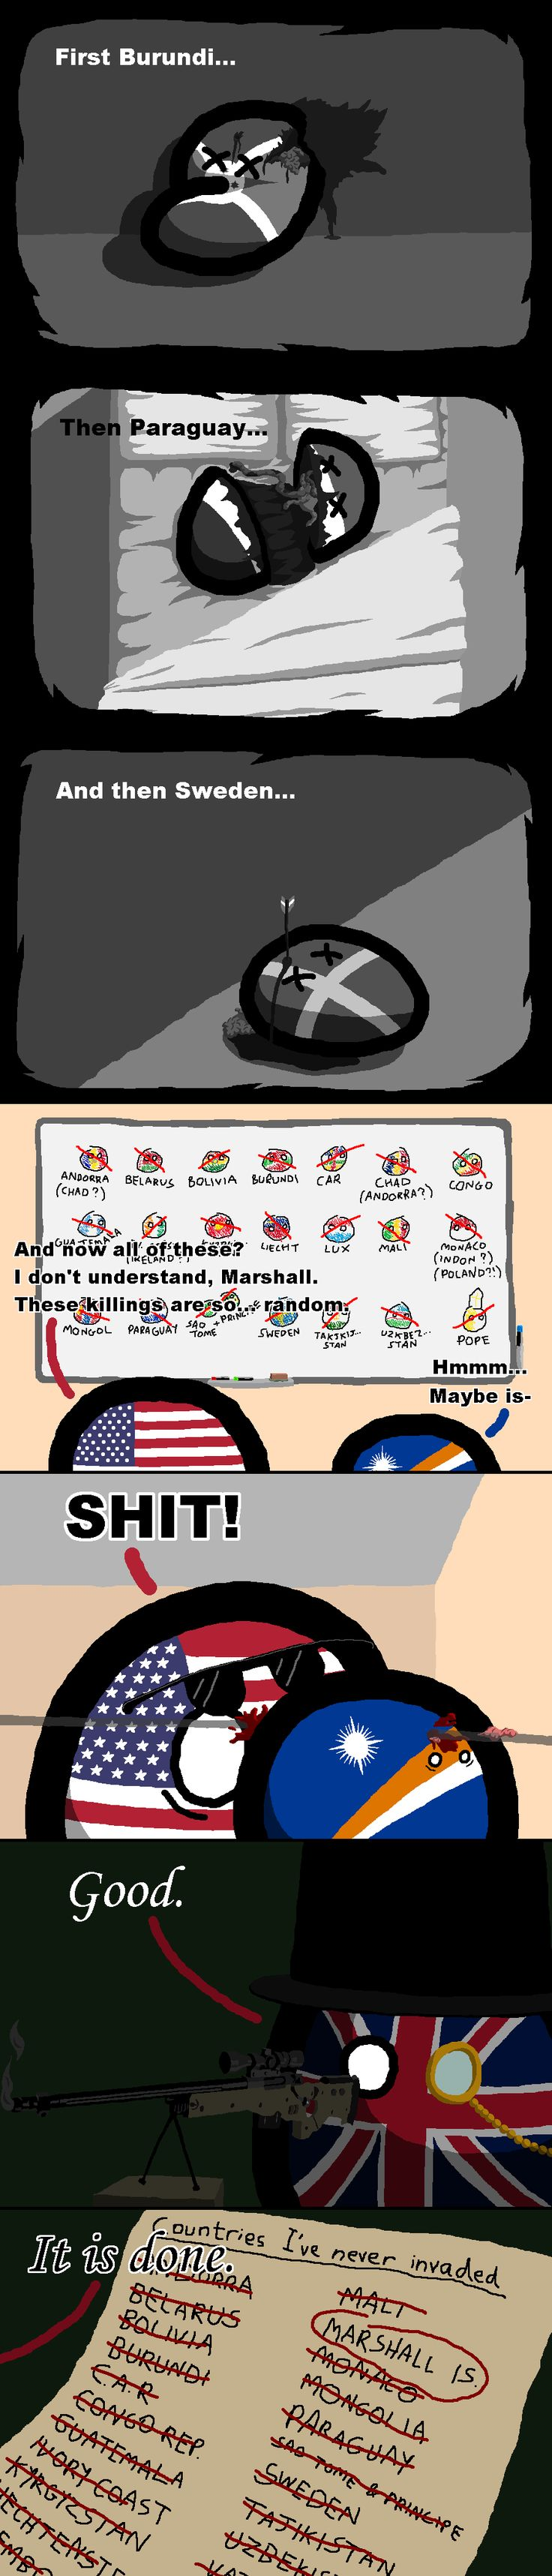 The Clay Yet To Be Conquered via reddit